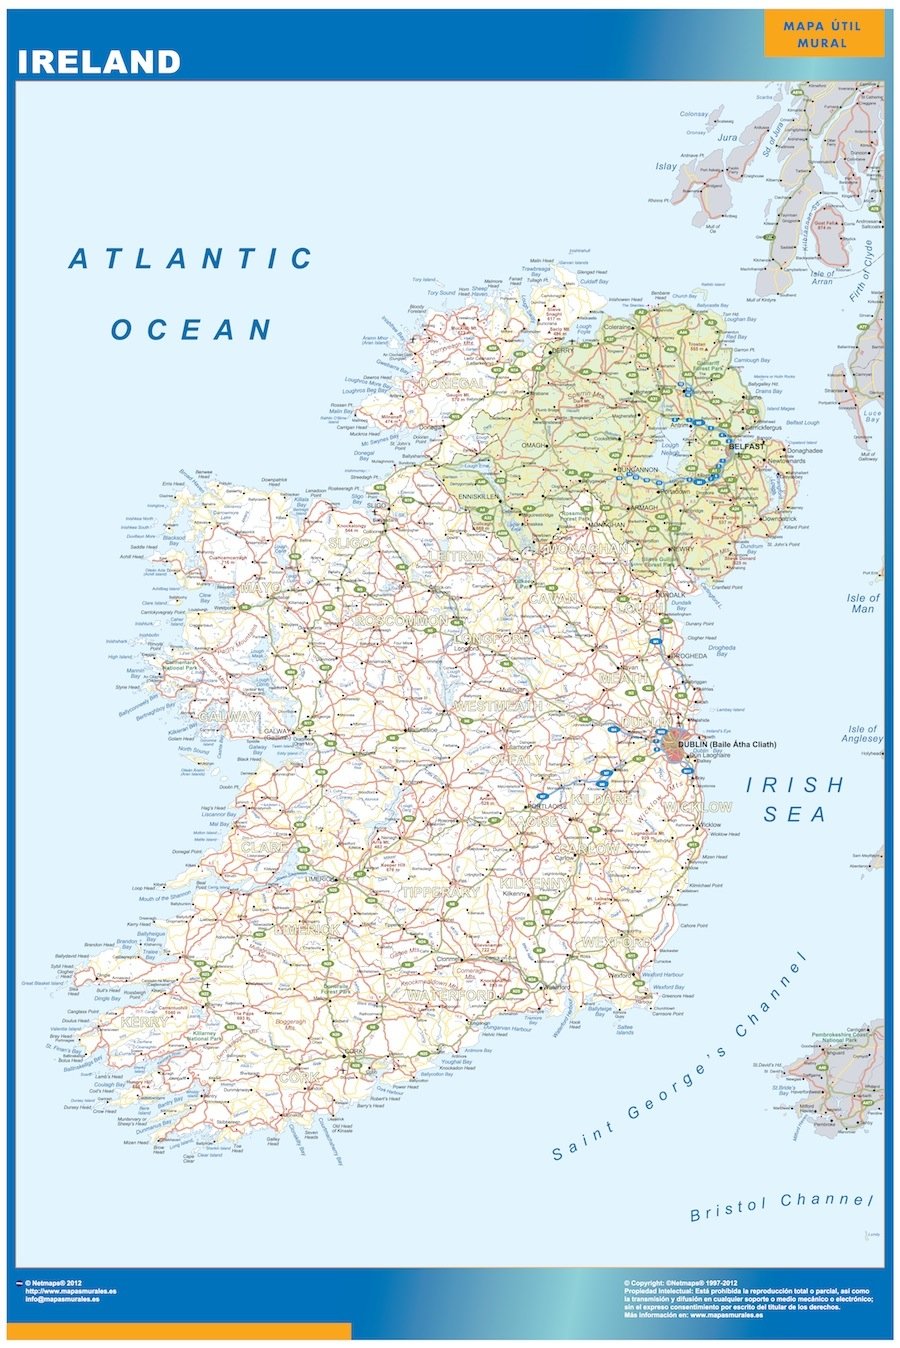 Ireland map on cuba map, britain map, portugal map, africa map, german map, british isles map, greece map, thailand map, poland map, japan map, denmark map, europe map, united states map, india map, norway map, iceland map, scotland map, wales map, germany map, irish map, new zealand map, kenya map, spain map, czech republic map, france map, netherlands map, australia map, italy map, england map, cyprus map, egypt map, uk map, malaysia map,